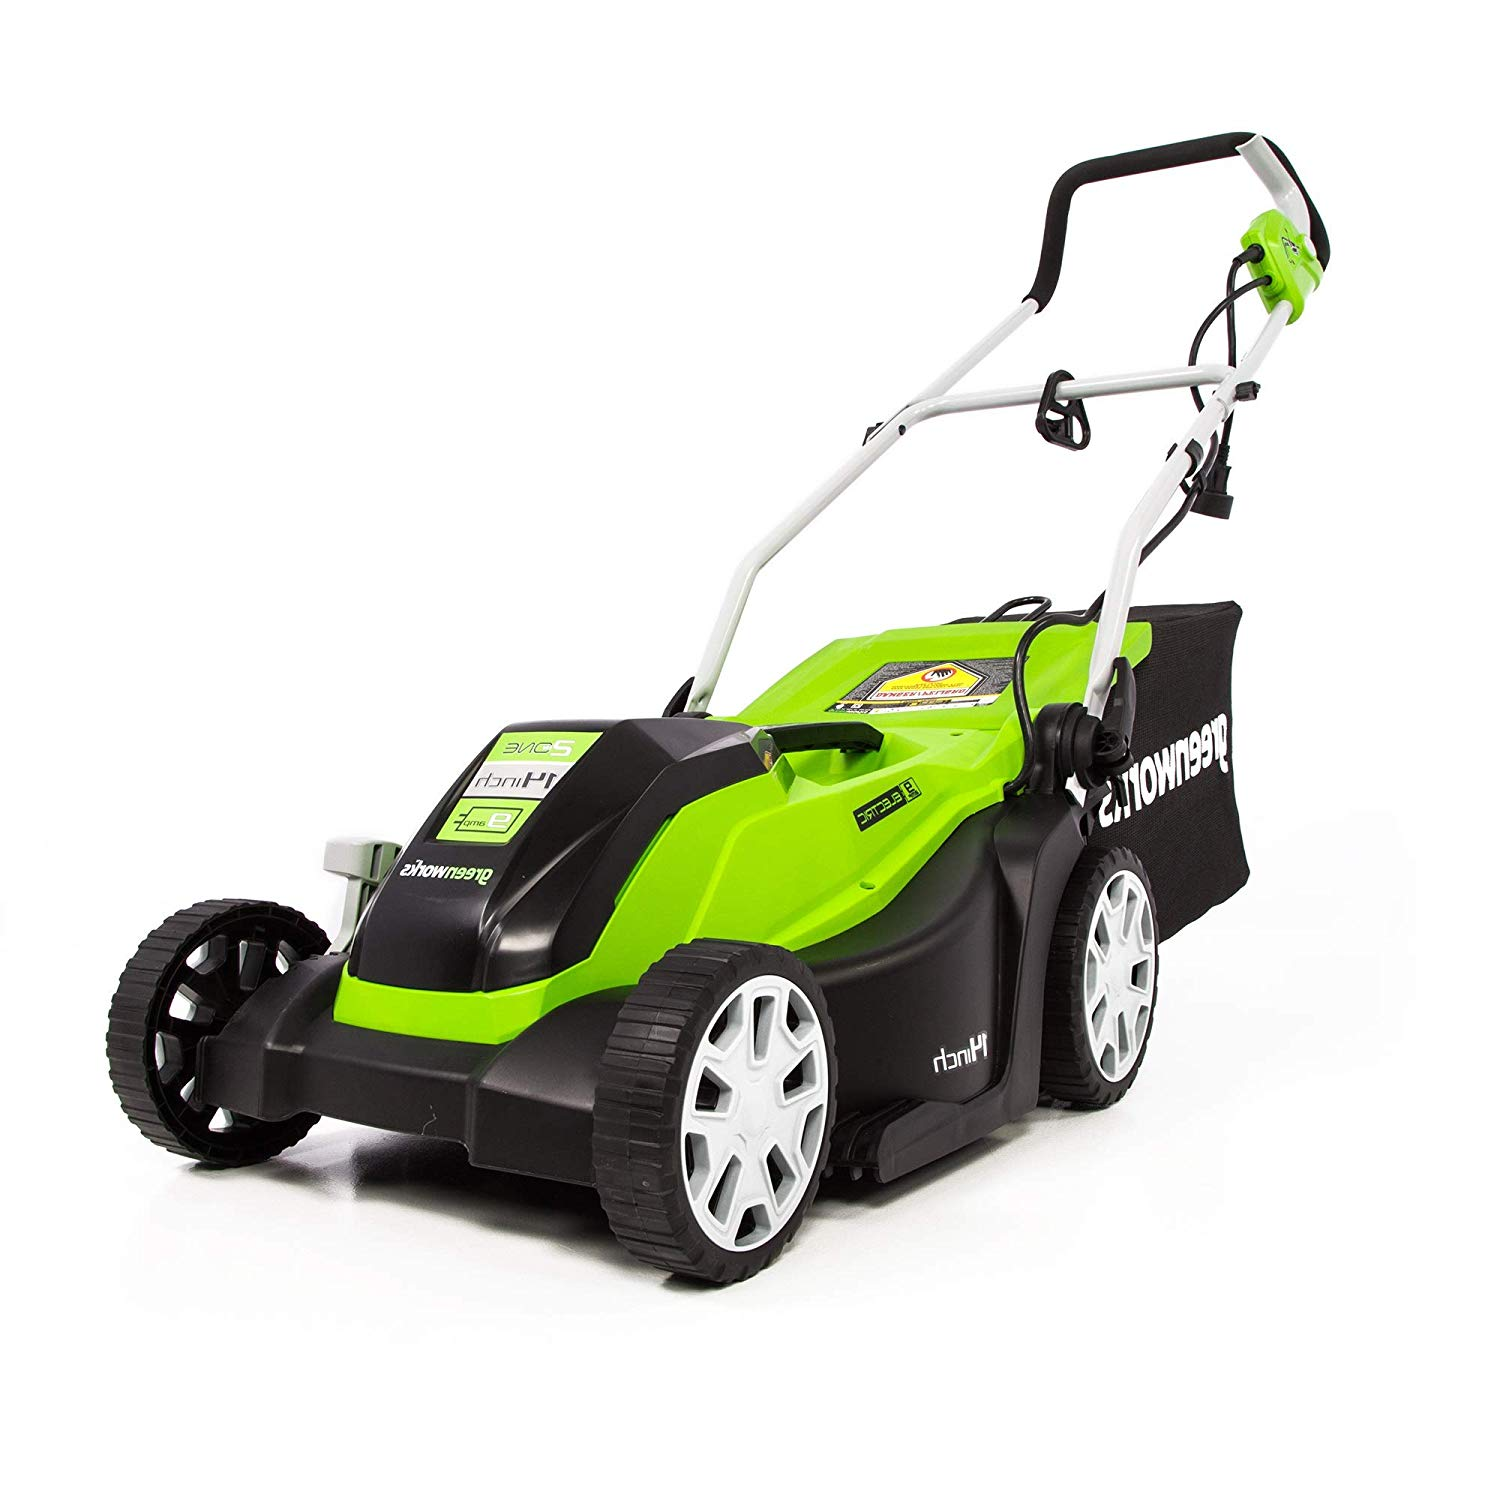 MO09B01 Corded Electric Lawn Mower By GreenWorks